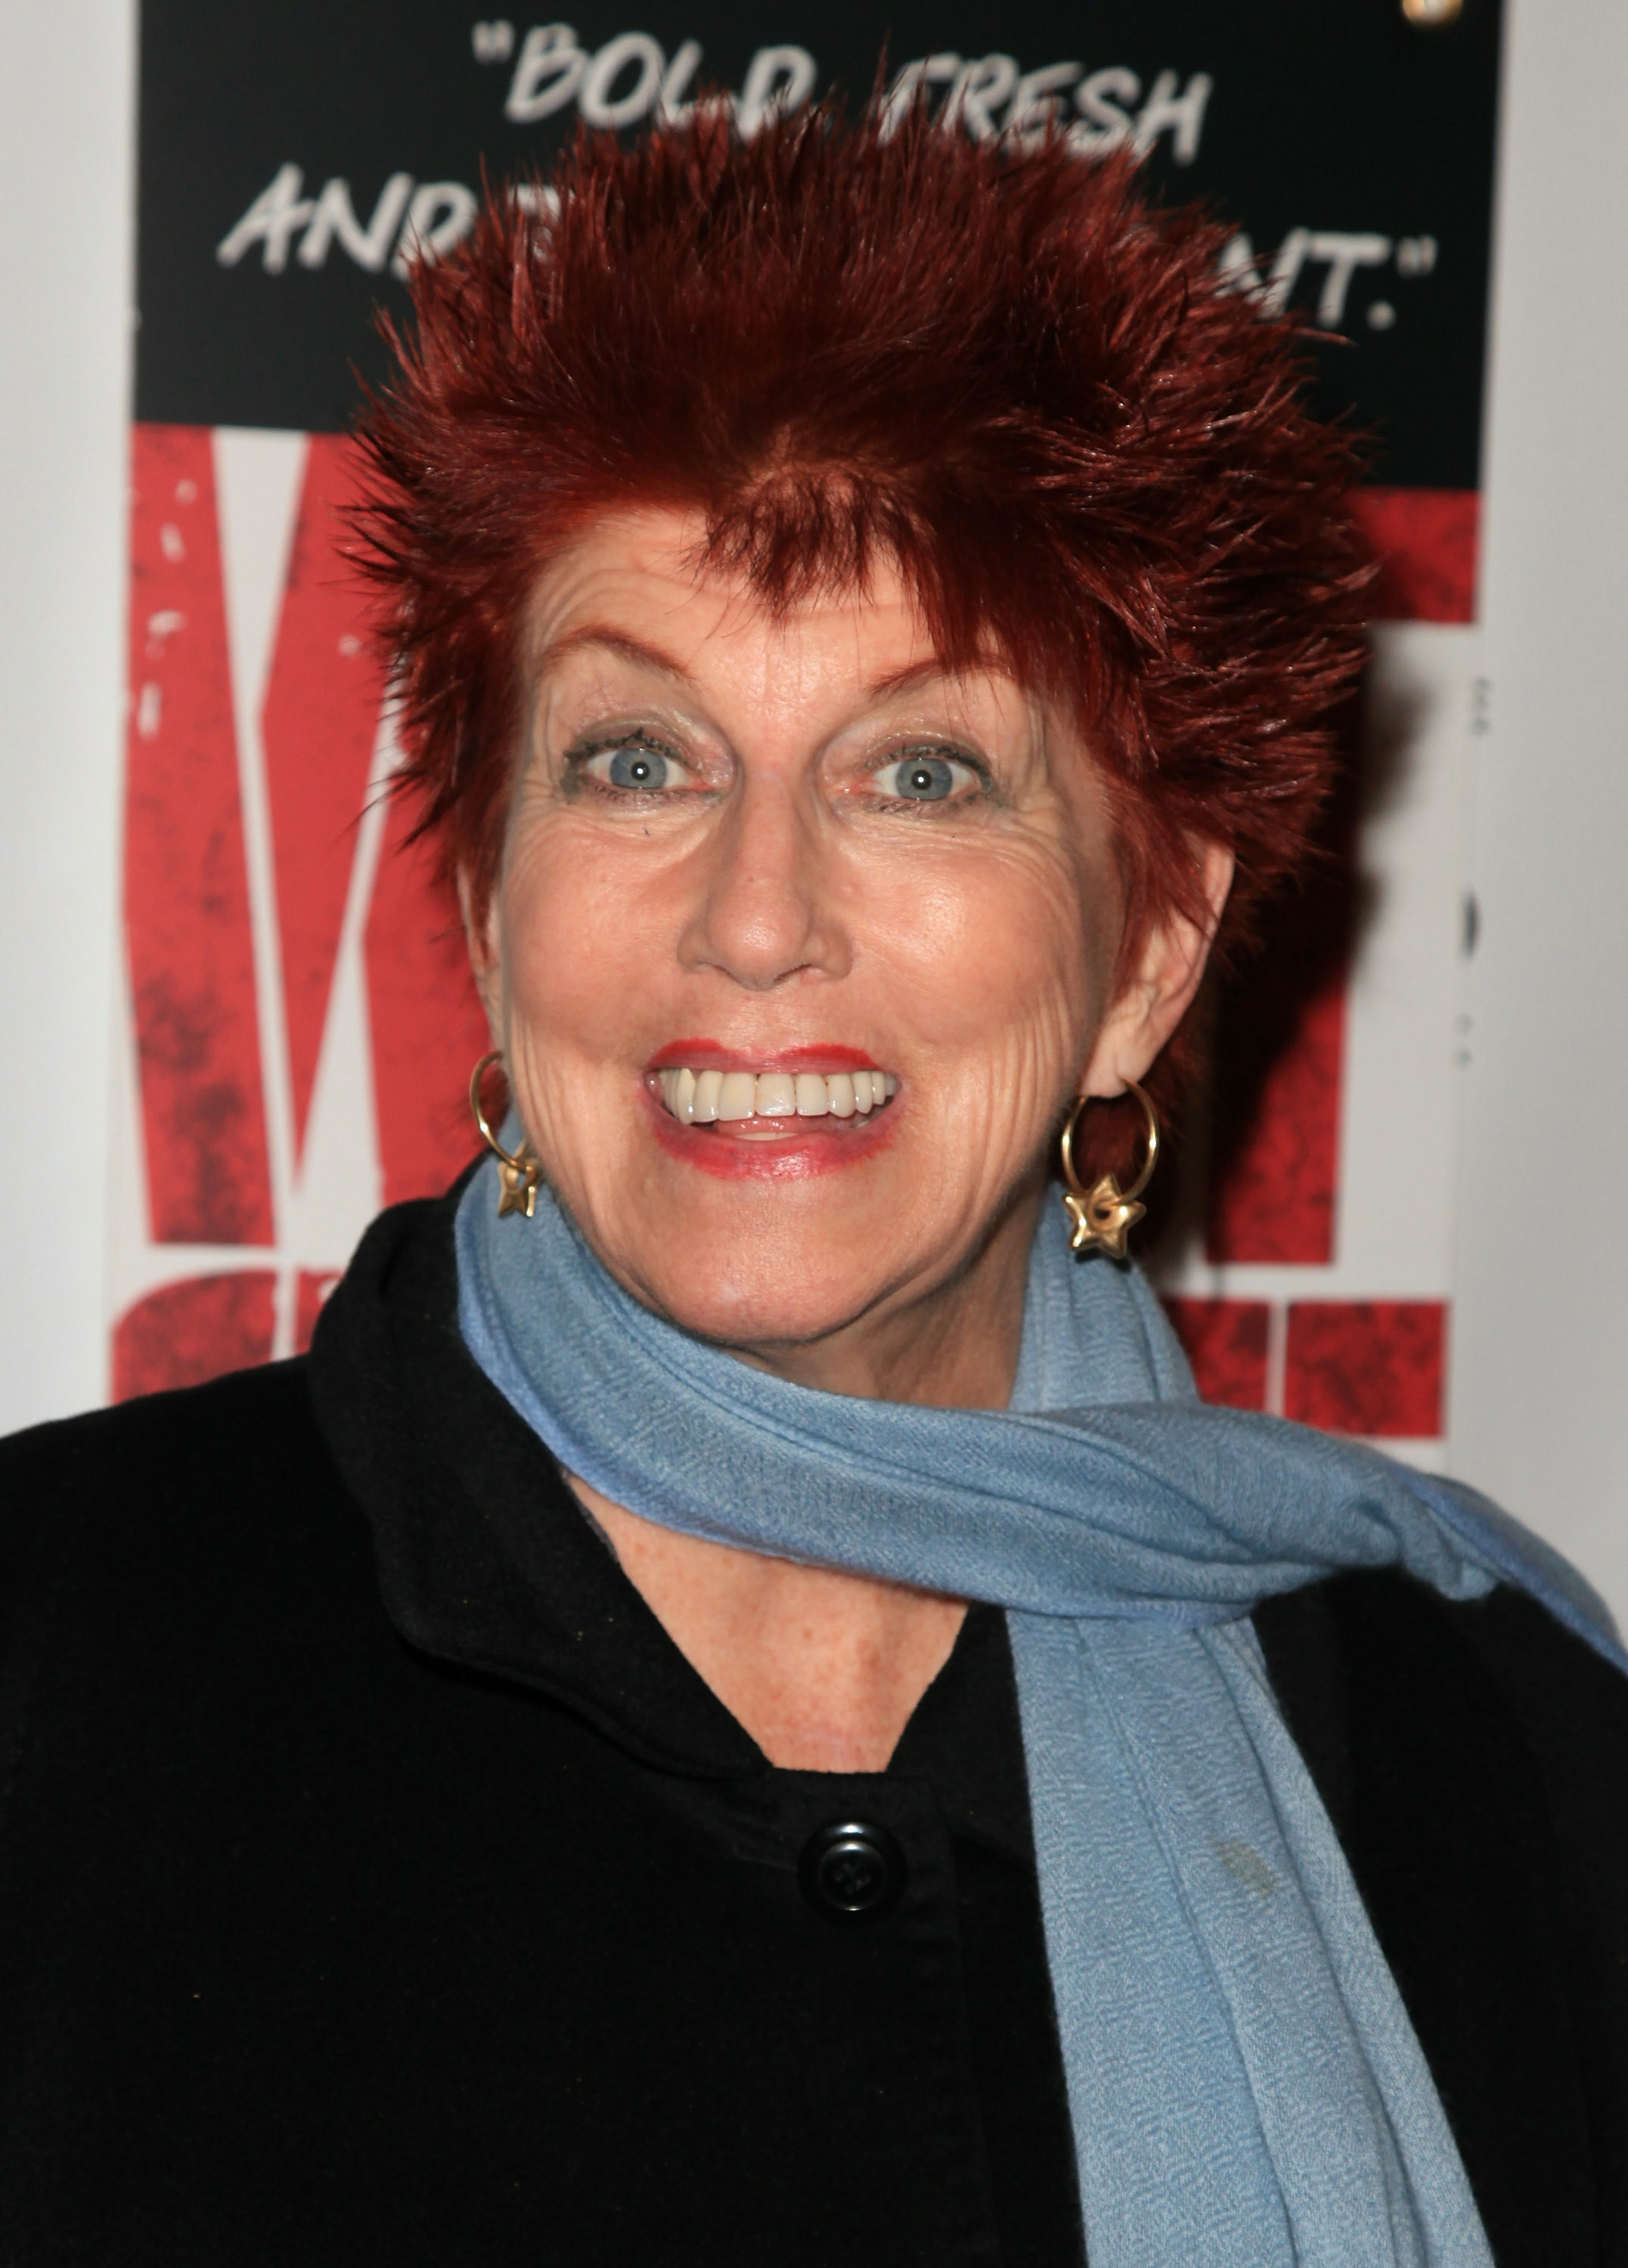 Actress Marcia Wallace on Dec. 1, 2010 in Hollywood, Calif. (Photo by Angela Weiss/Getty Images)